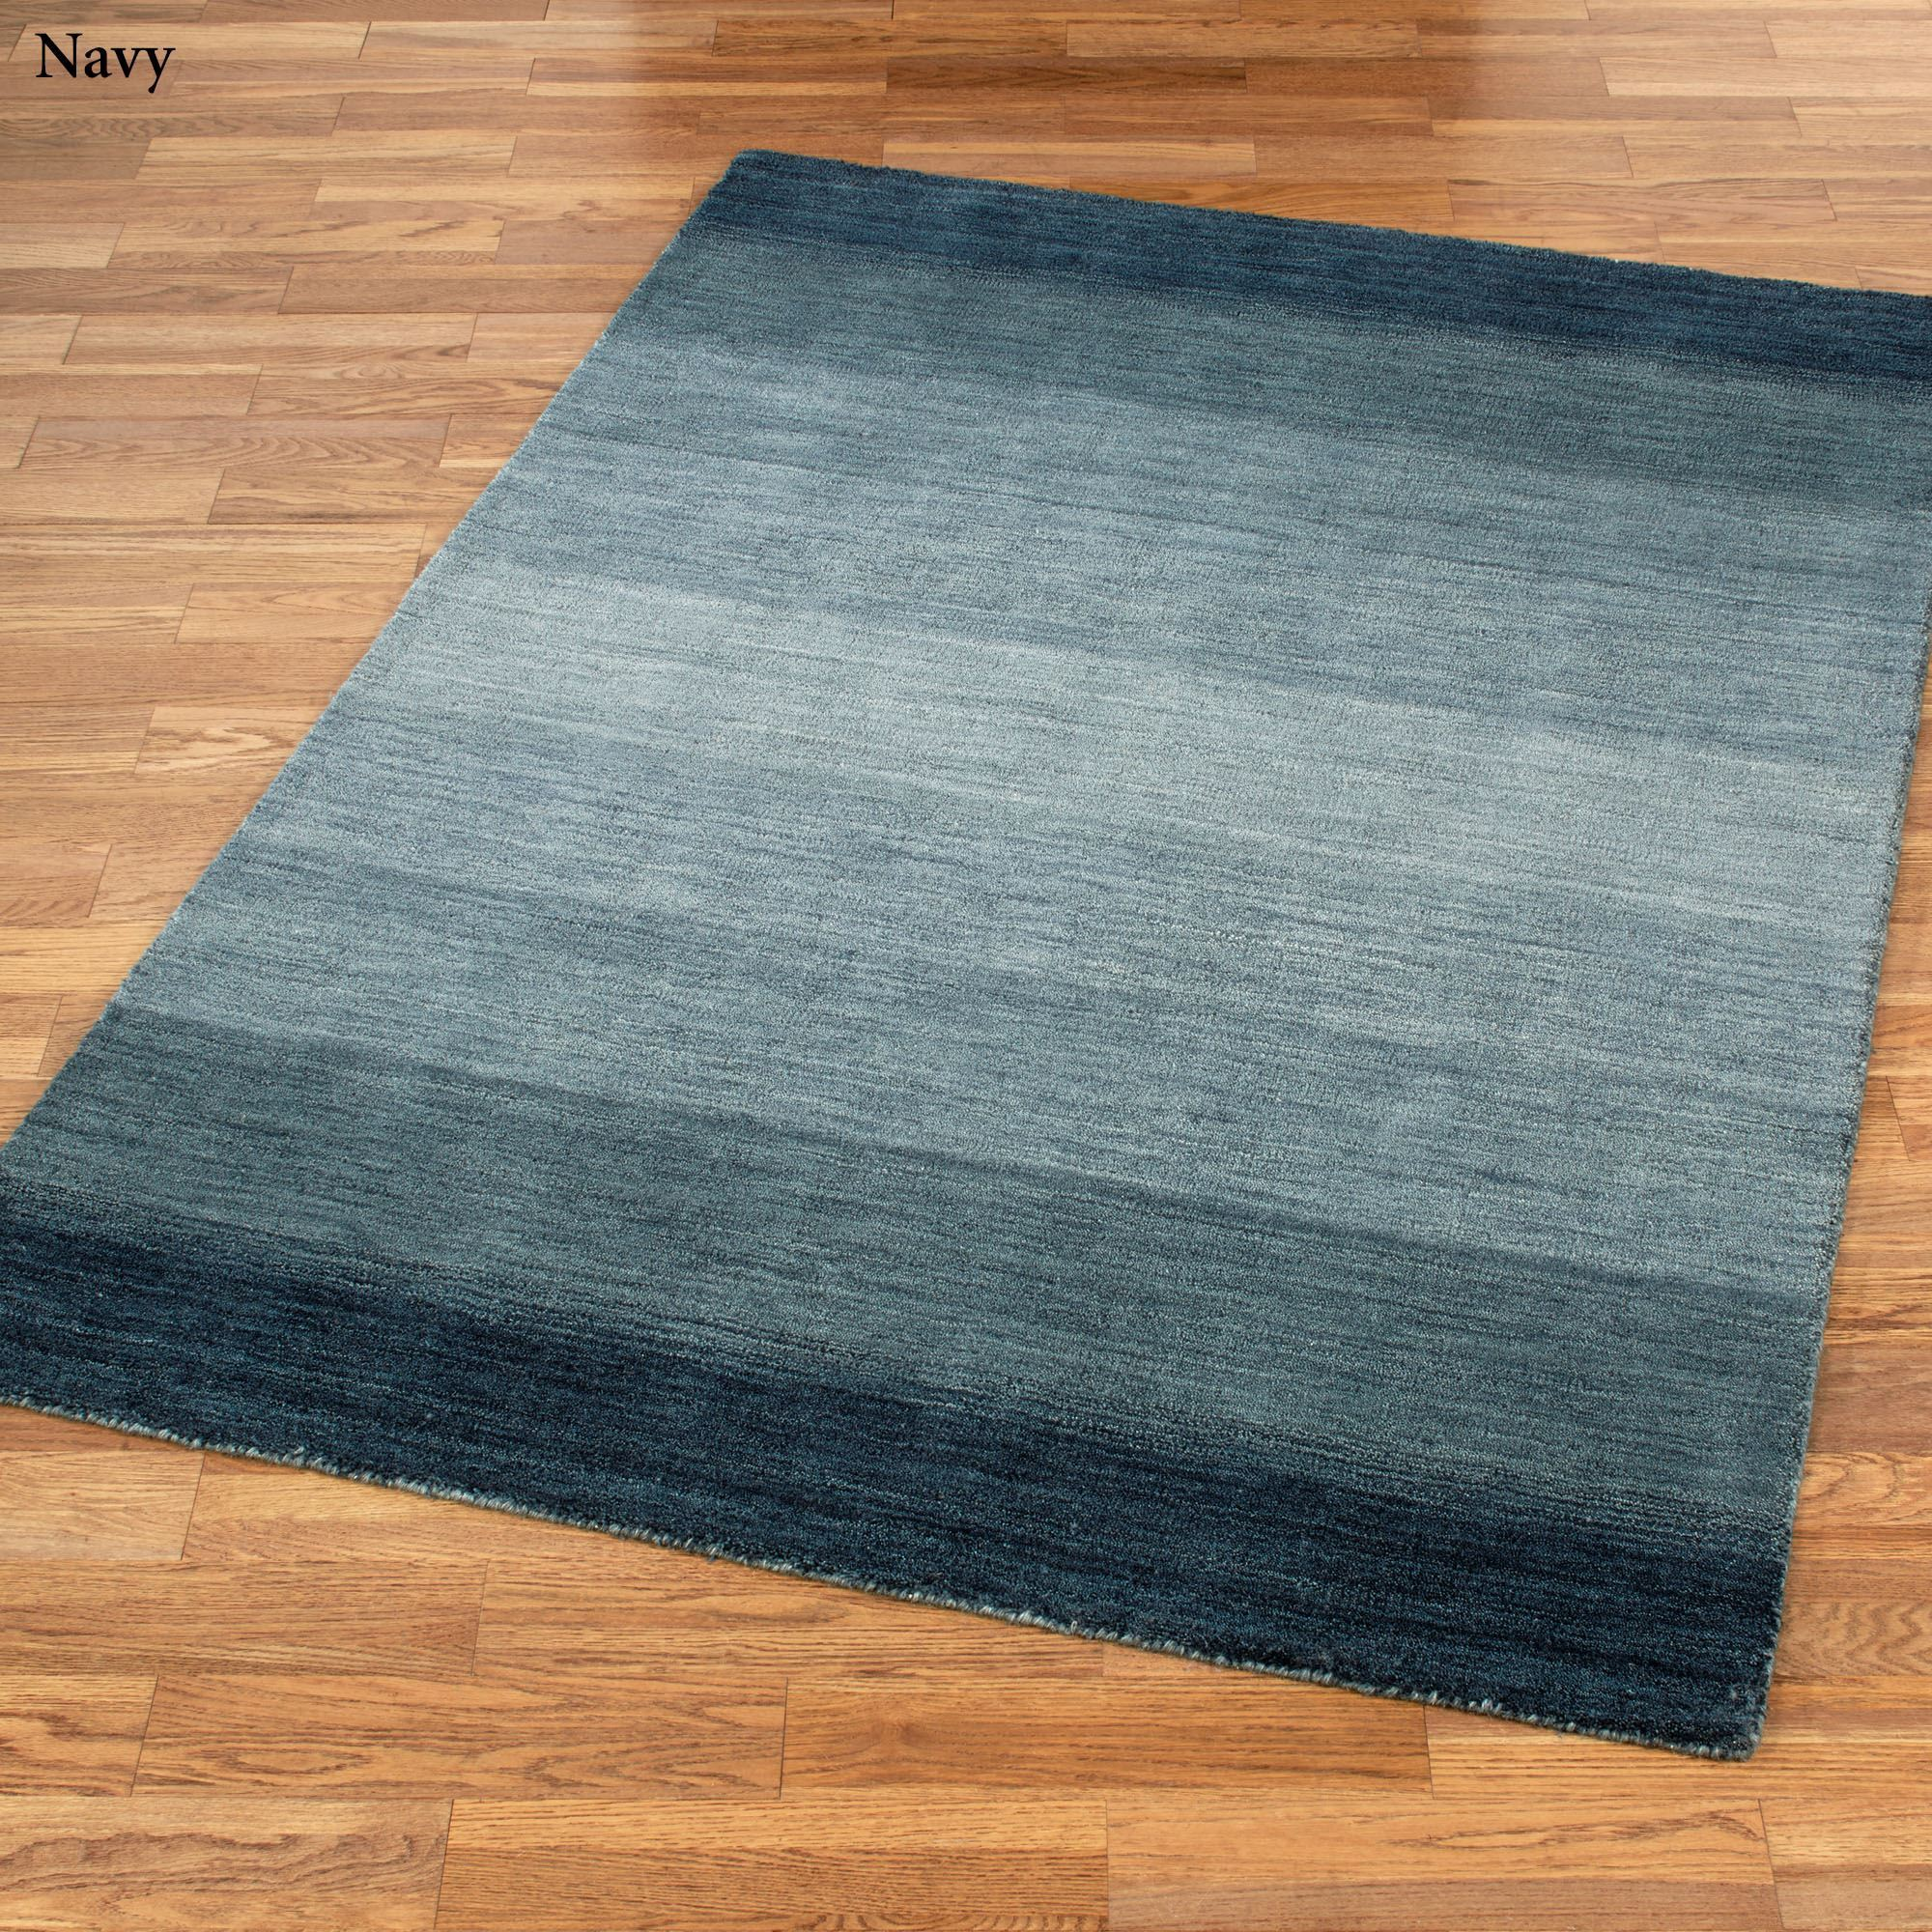 Hand Loomed Shine Rug Gray: Blue Ombre Rug